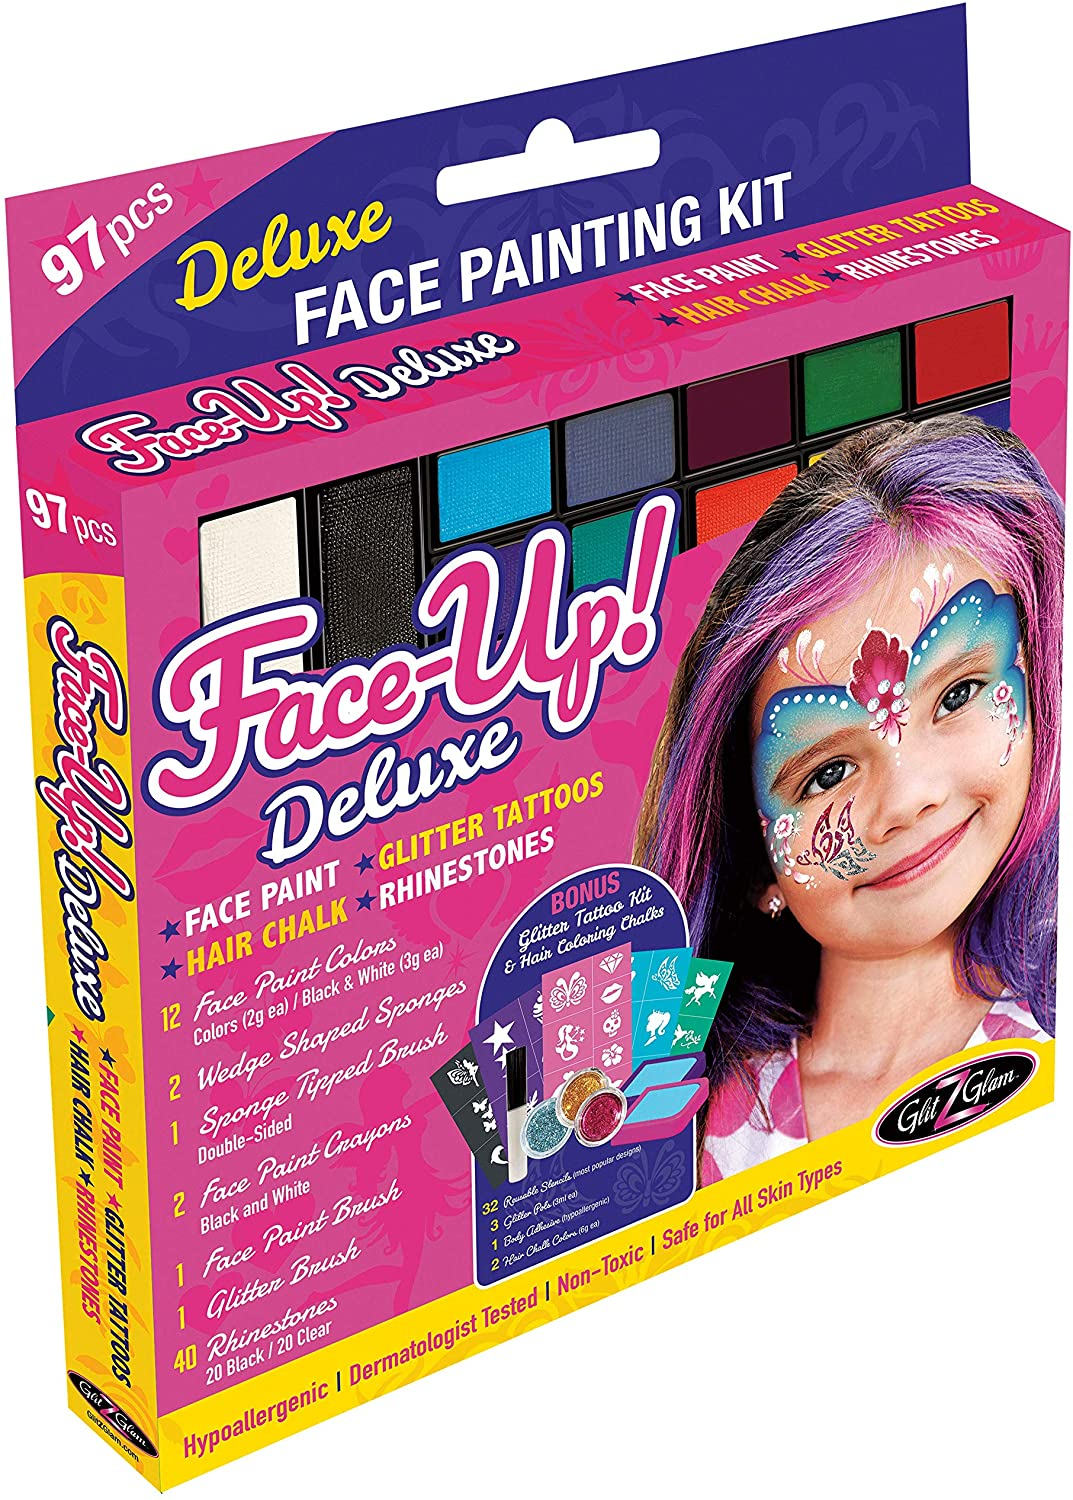 GlitZGlam Original XL Face Paint Kit – FACE-UP Deluxe: 97 Piece, 3 in1 Face Paint, Glitter Tattoos with 32 Reusable Stencils, Rhinestones AND Hair Coloring Chalk. Hypoallergenic & Dermatologist-Tested